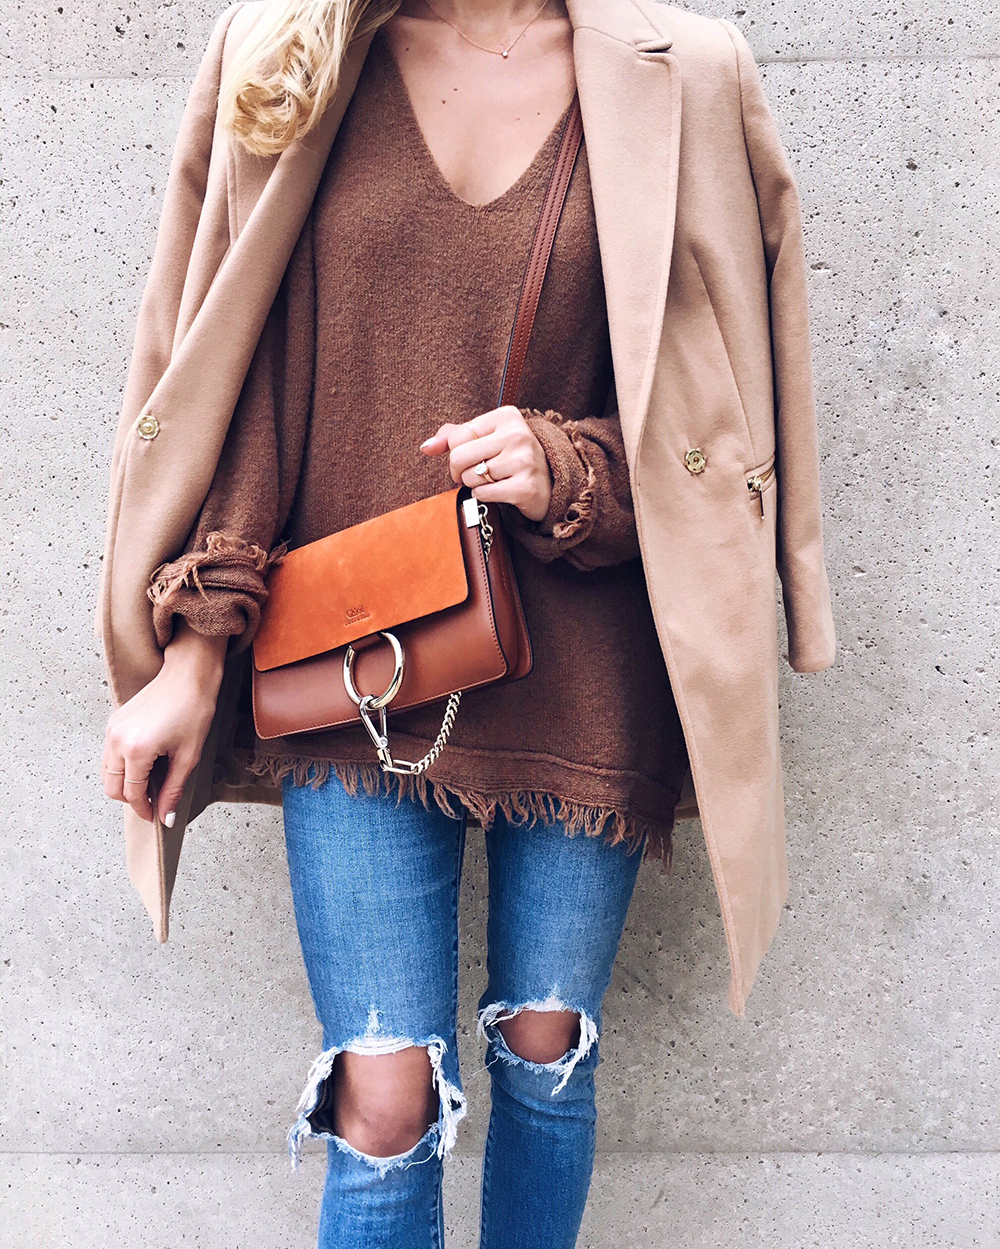 livvyland-blog-olivia-watson-instagram-roundup-december-cozy-brown-camel-coat-free-people-sweater-chloe-faye-mini-tan-handbag